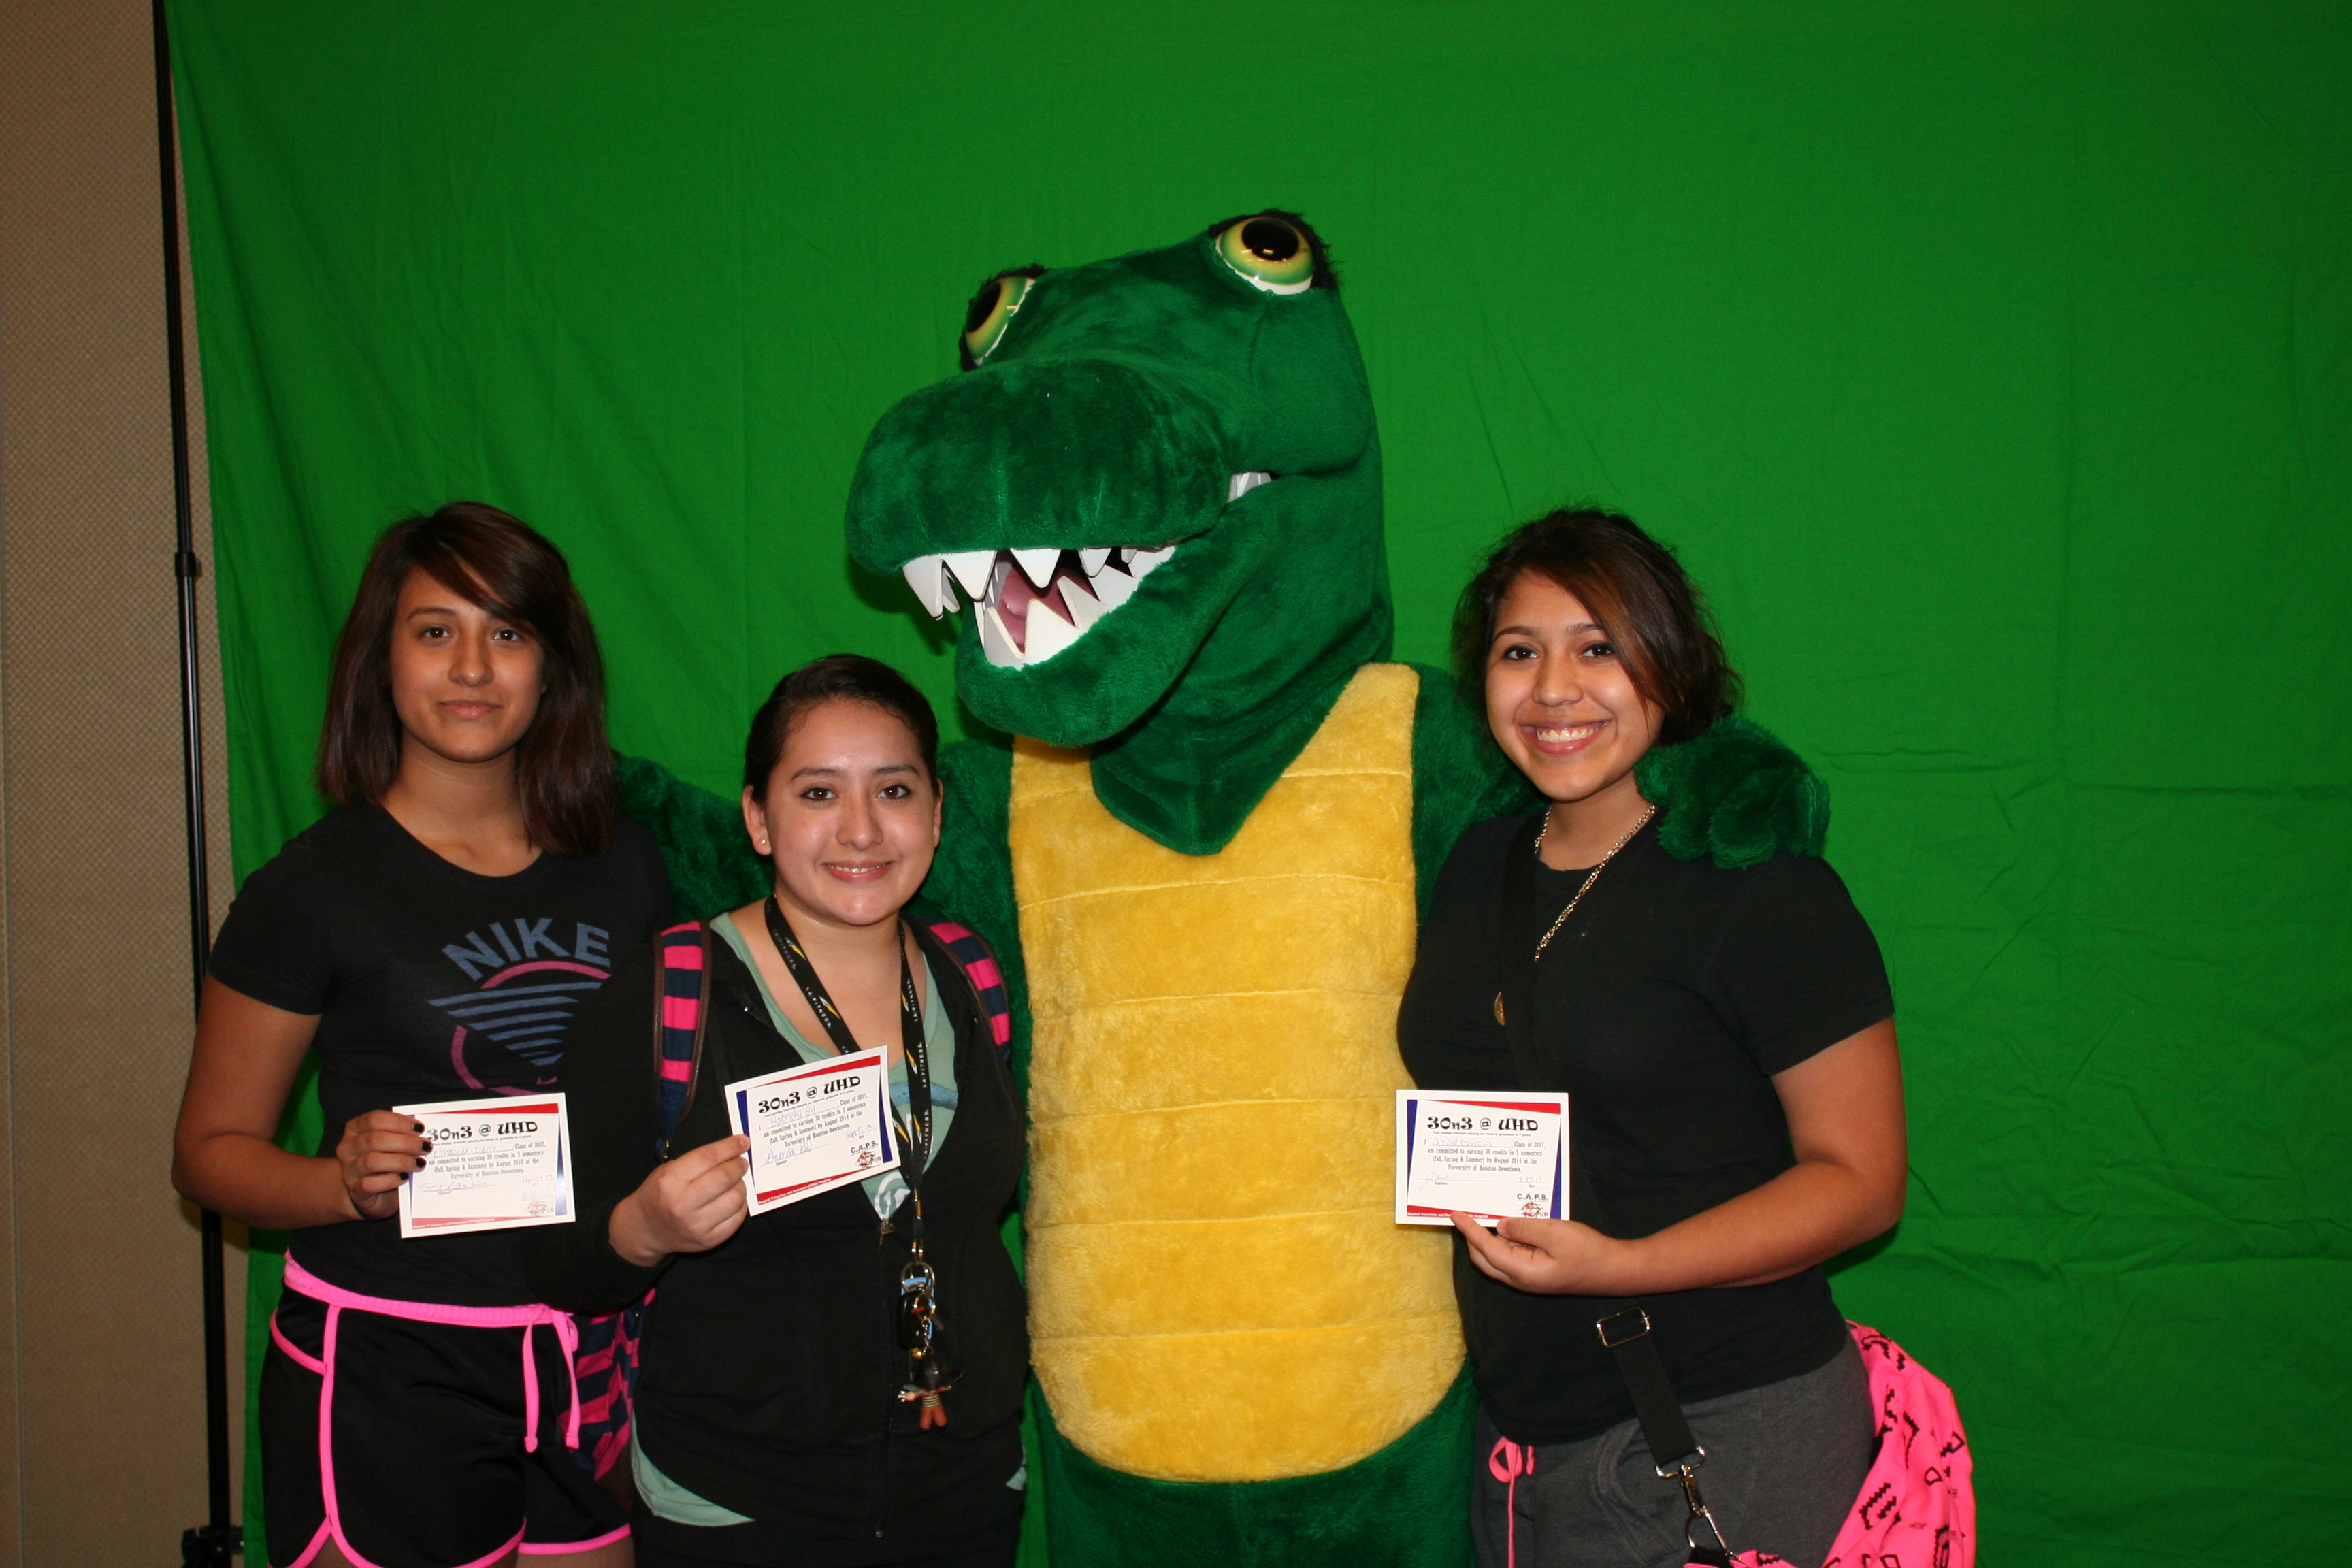 Students taking 30n3 pledge and pose with Ed-U-Gator.